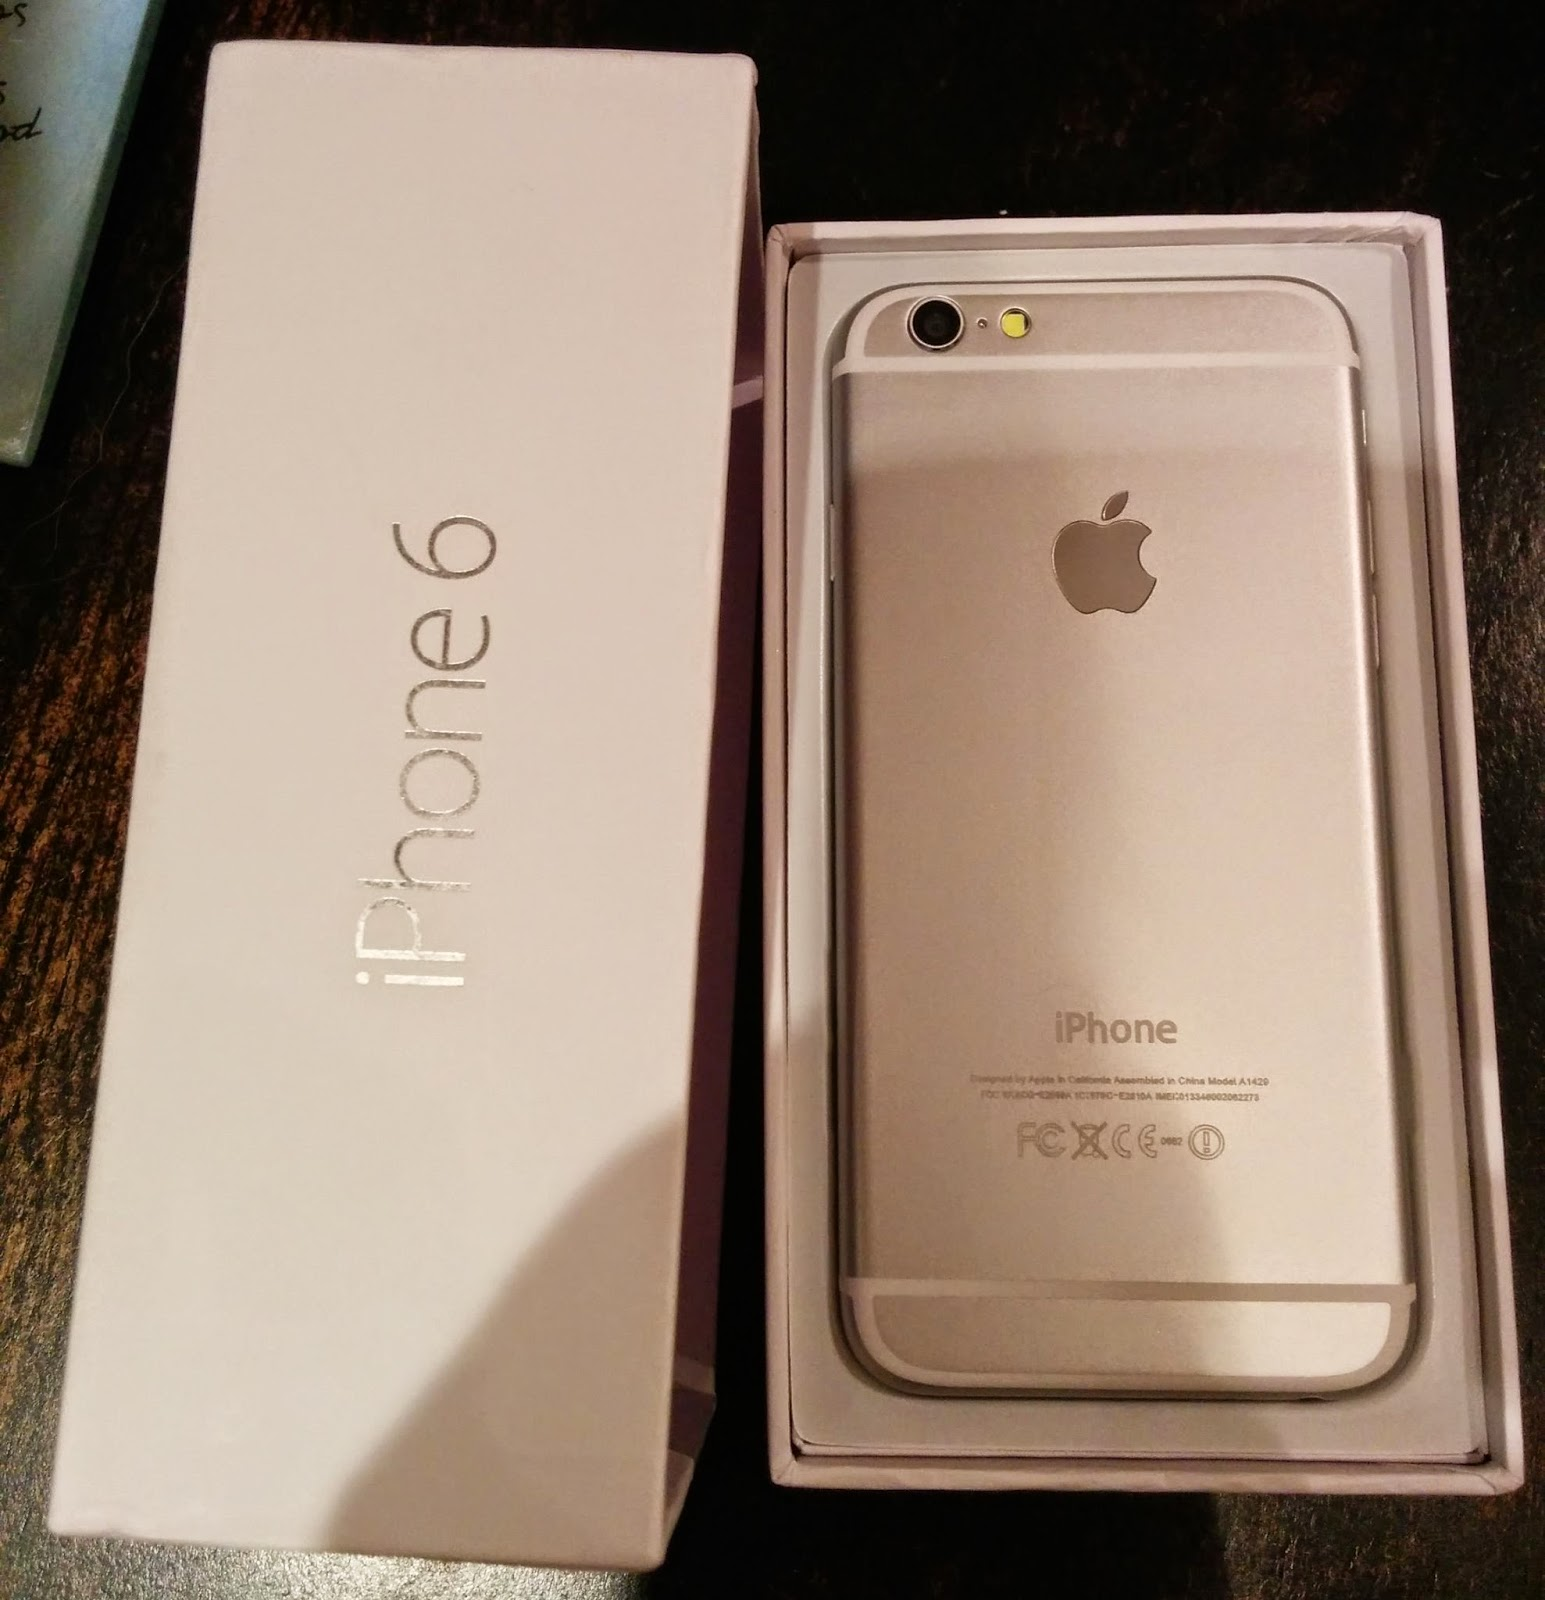 Aliexpress Uk Review Iphone 6 Replica From China I6 Goophone